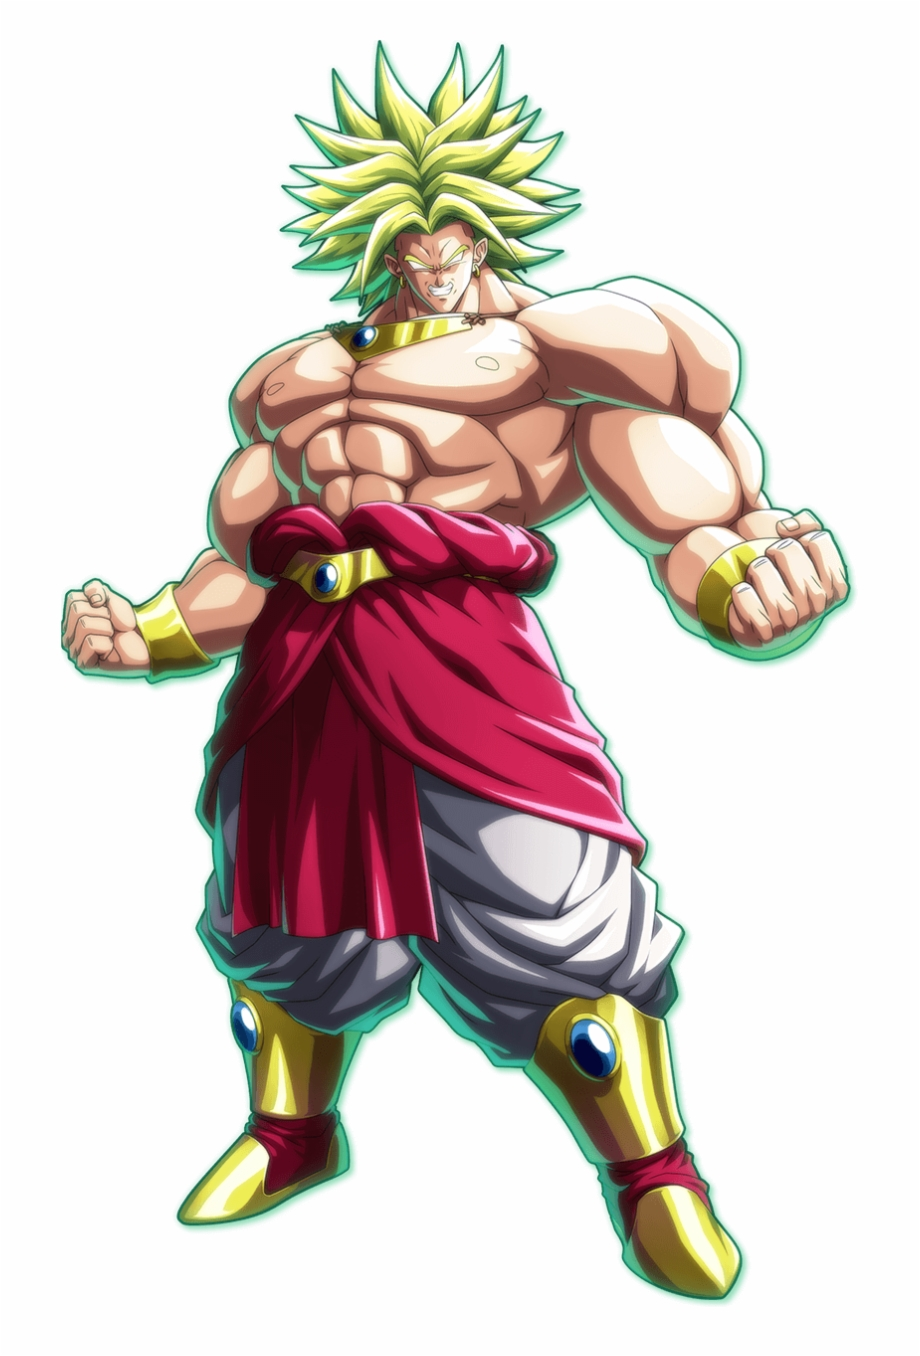 Dbfz Broly Portrait Dragon Ball Fighterz Broly Png Transparent Png Download 2372566 Vippng